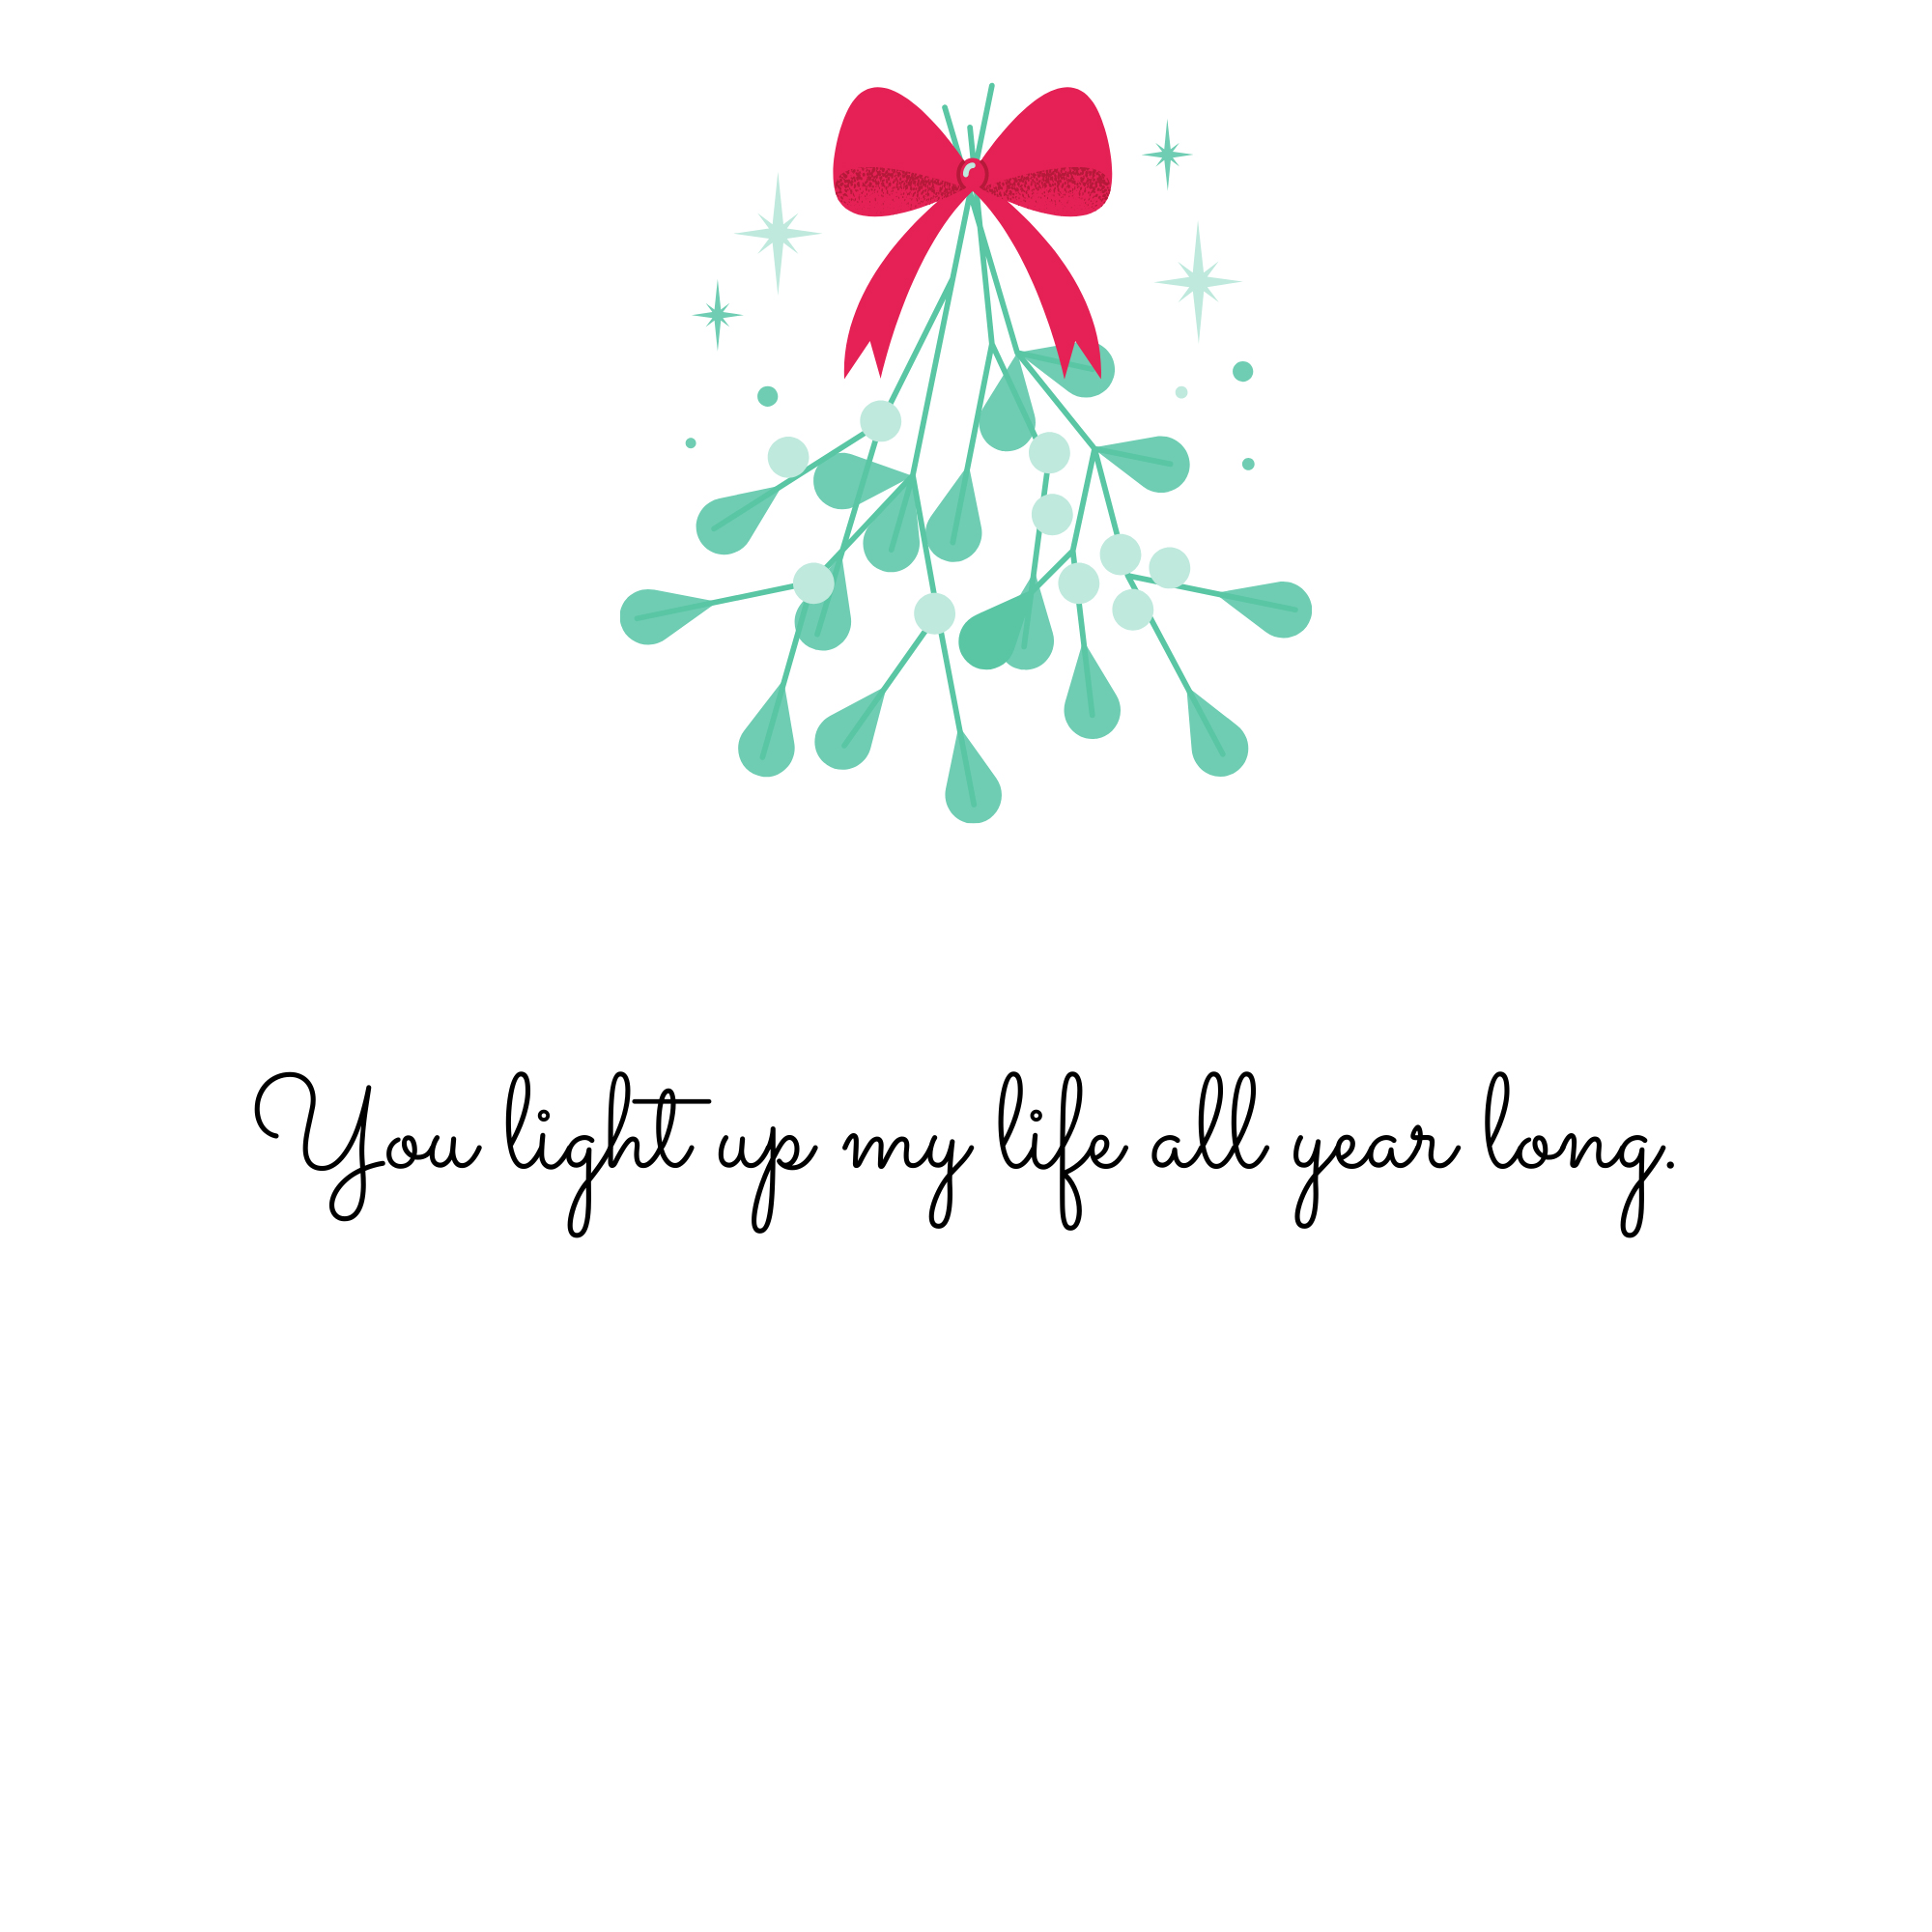 You light up my life all year long.